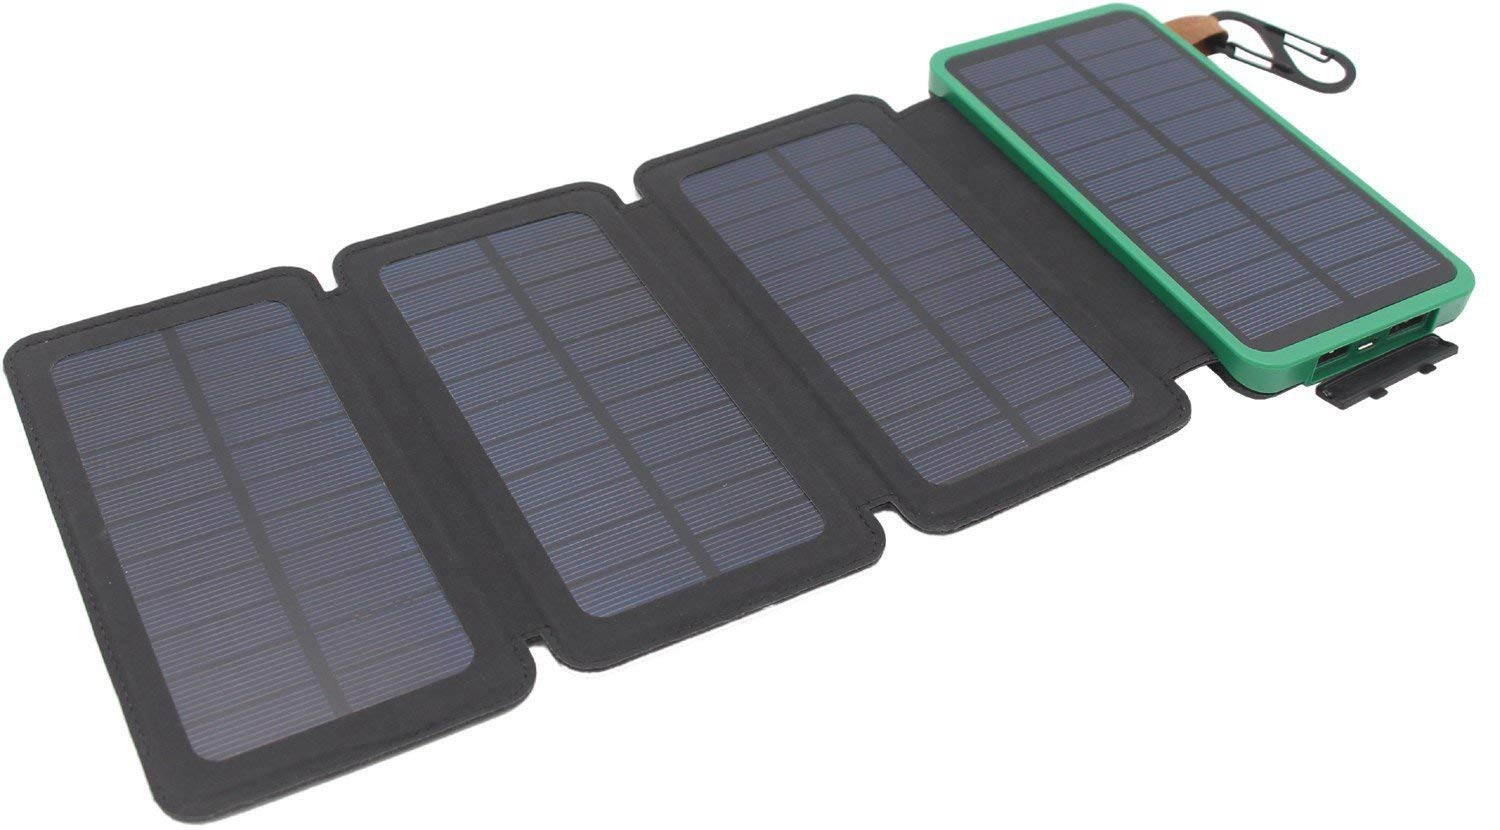 Itscool Solar Charger Power Bank 12000mAh, 9 LED, 4 Solar Panels,2 Waterproof USB for Smartphones and All 5V Devices (4 Panels Green)